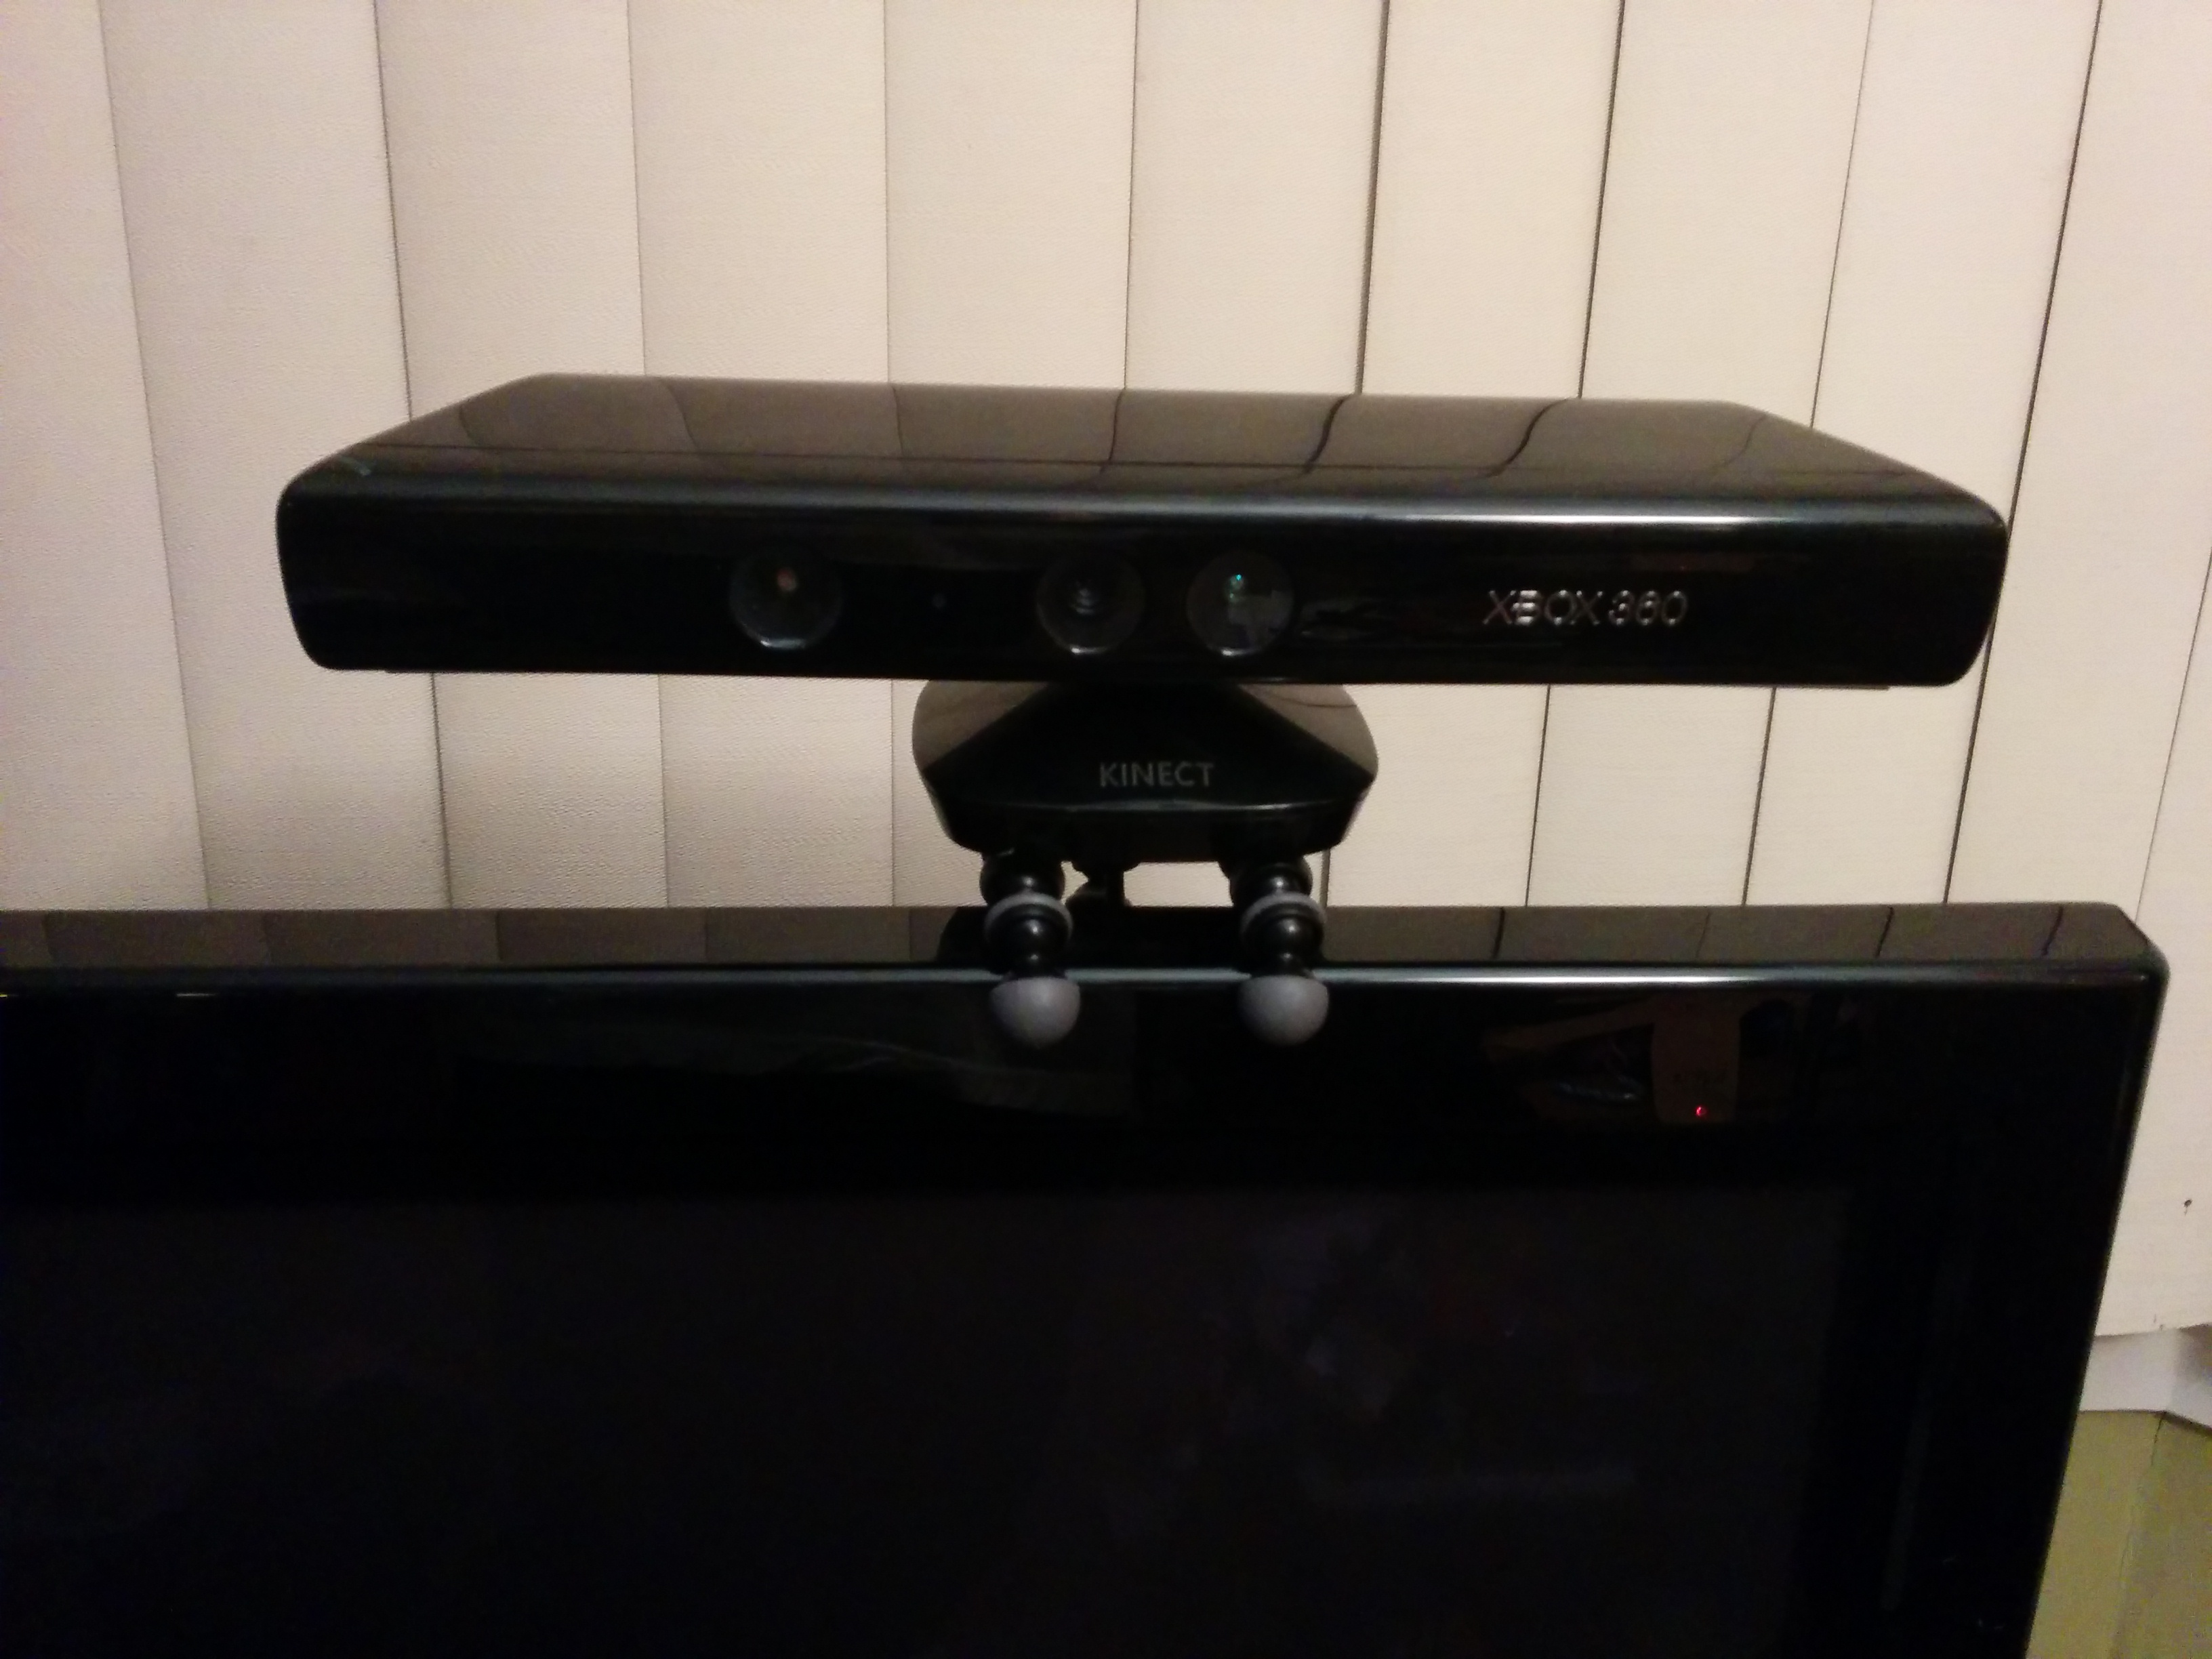 Best Mount For Xbox One Kinect Xbox 360 Kinect TV Mount